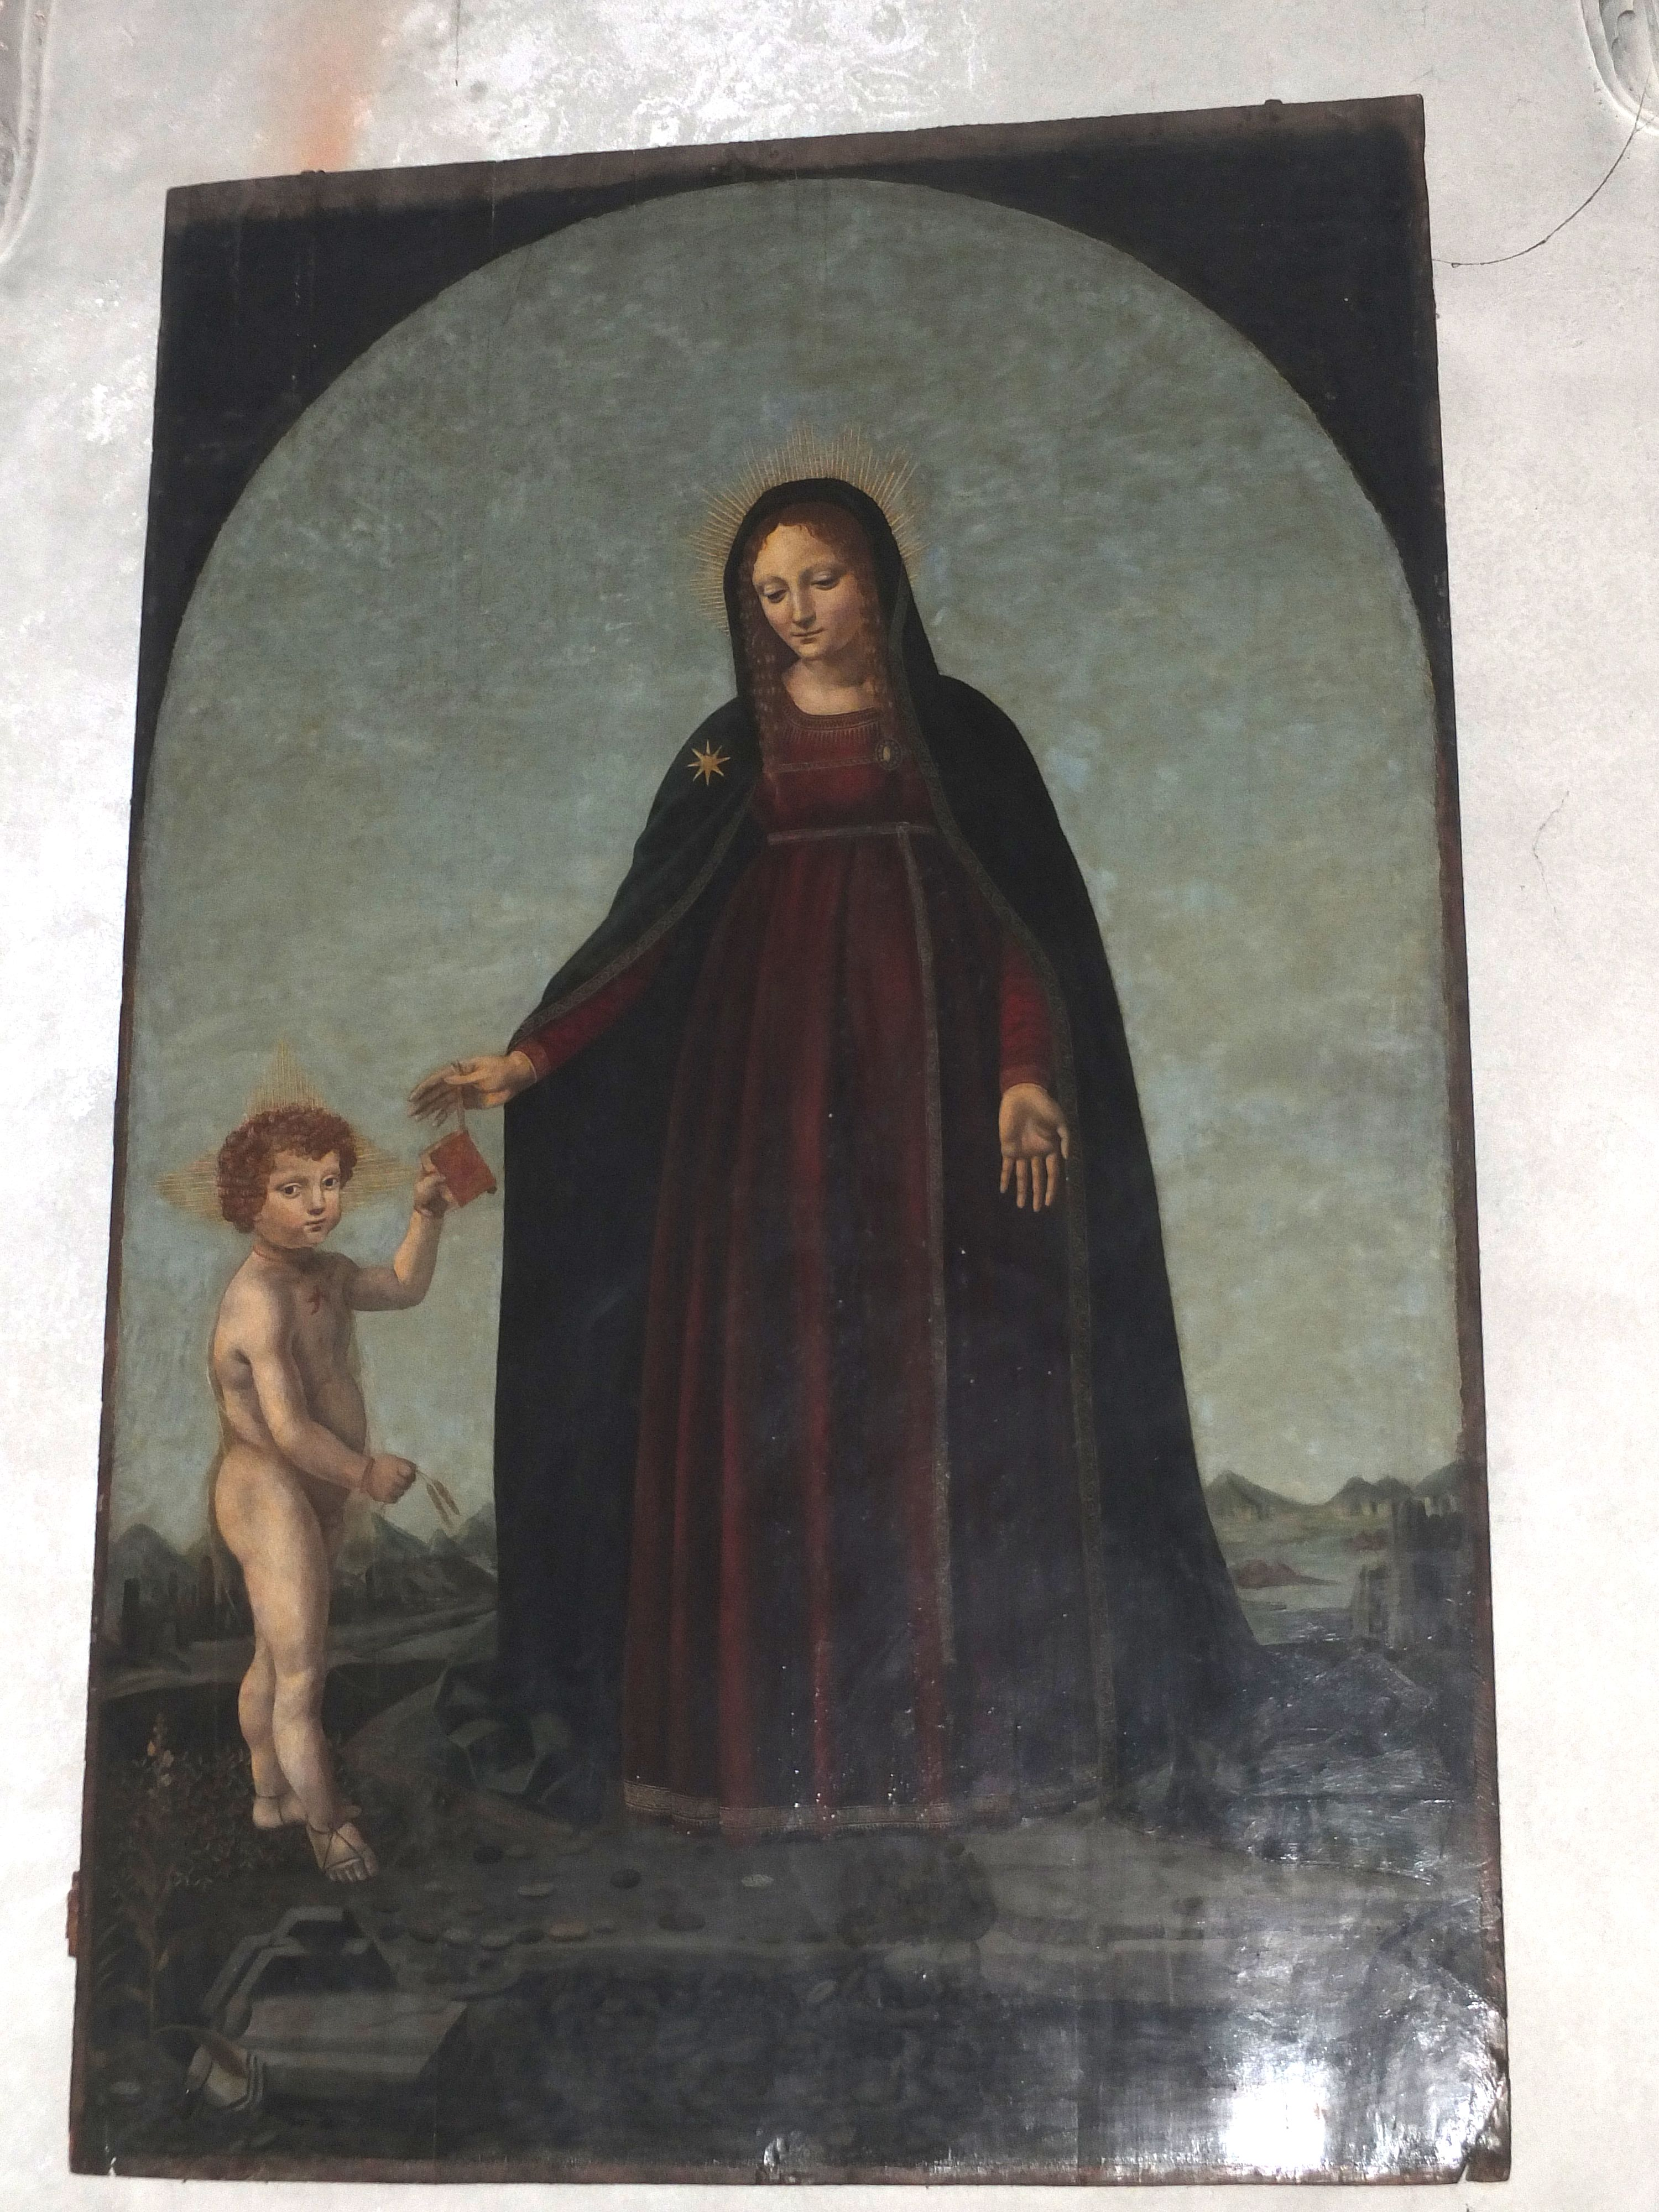 Francesco da Melzo and his mother, Isabella of Aragon as